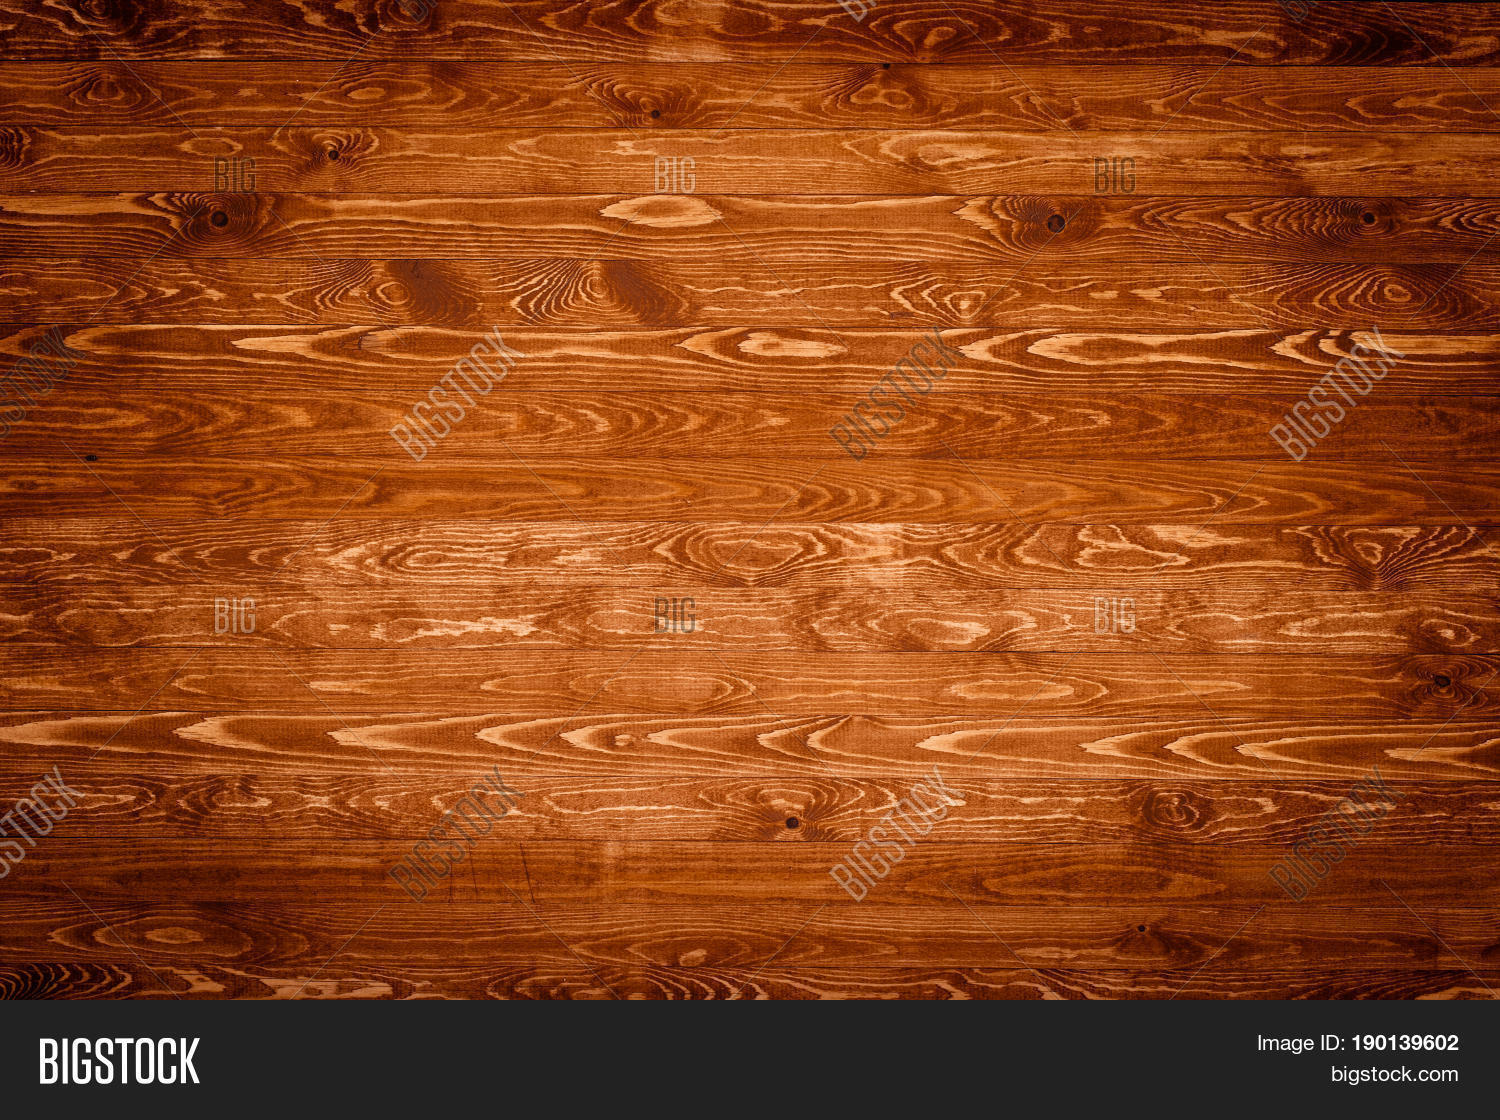 Wooden table background pattern - Empty Wood Table For Product Placement Or Montage Wood Table Top View Wood Table